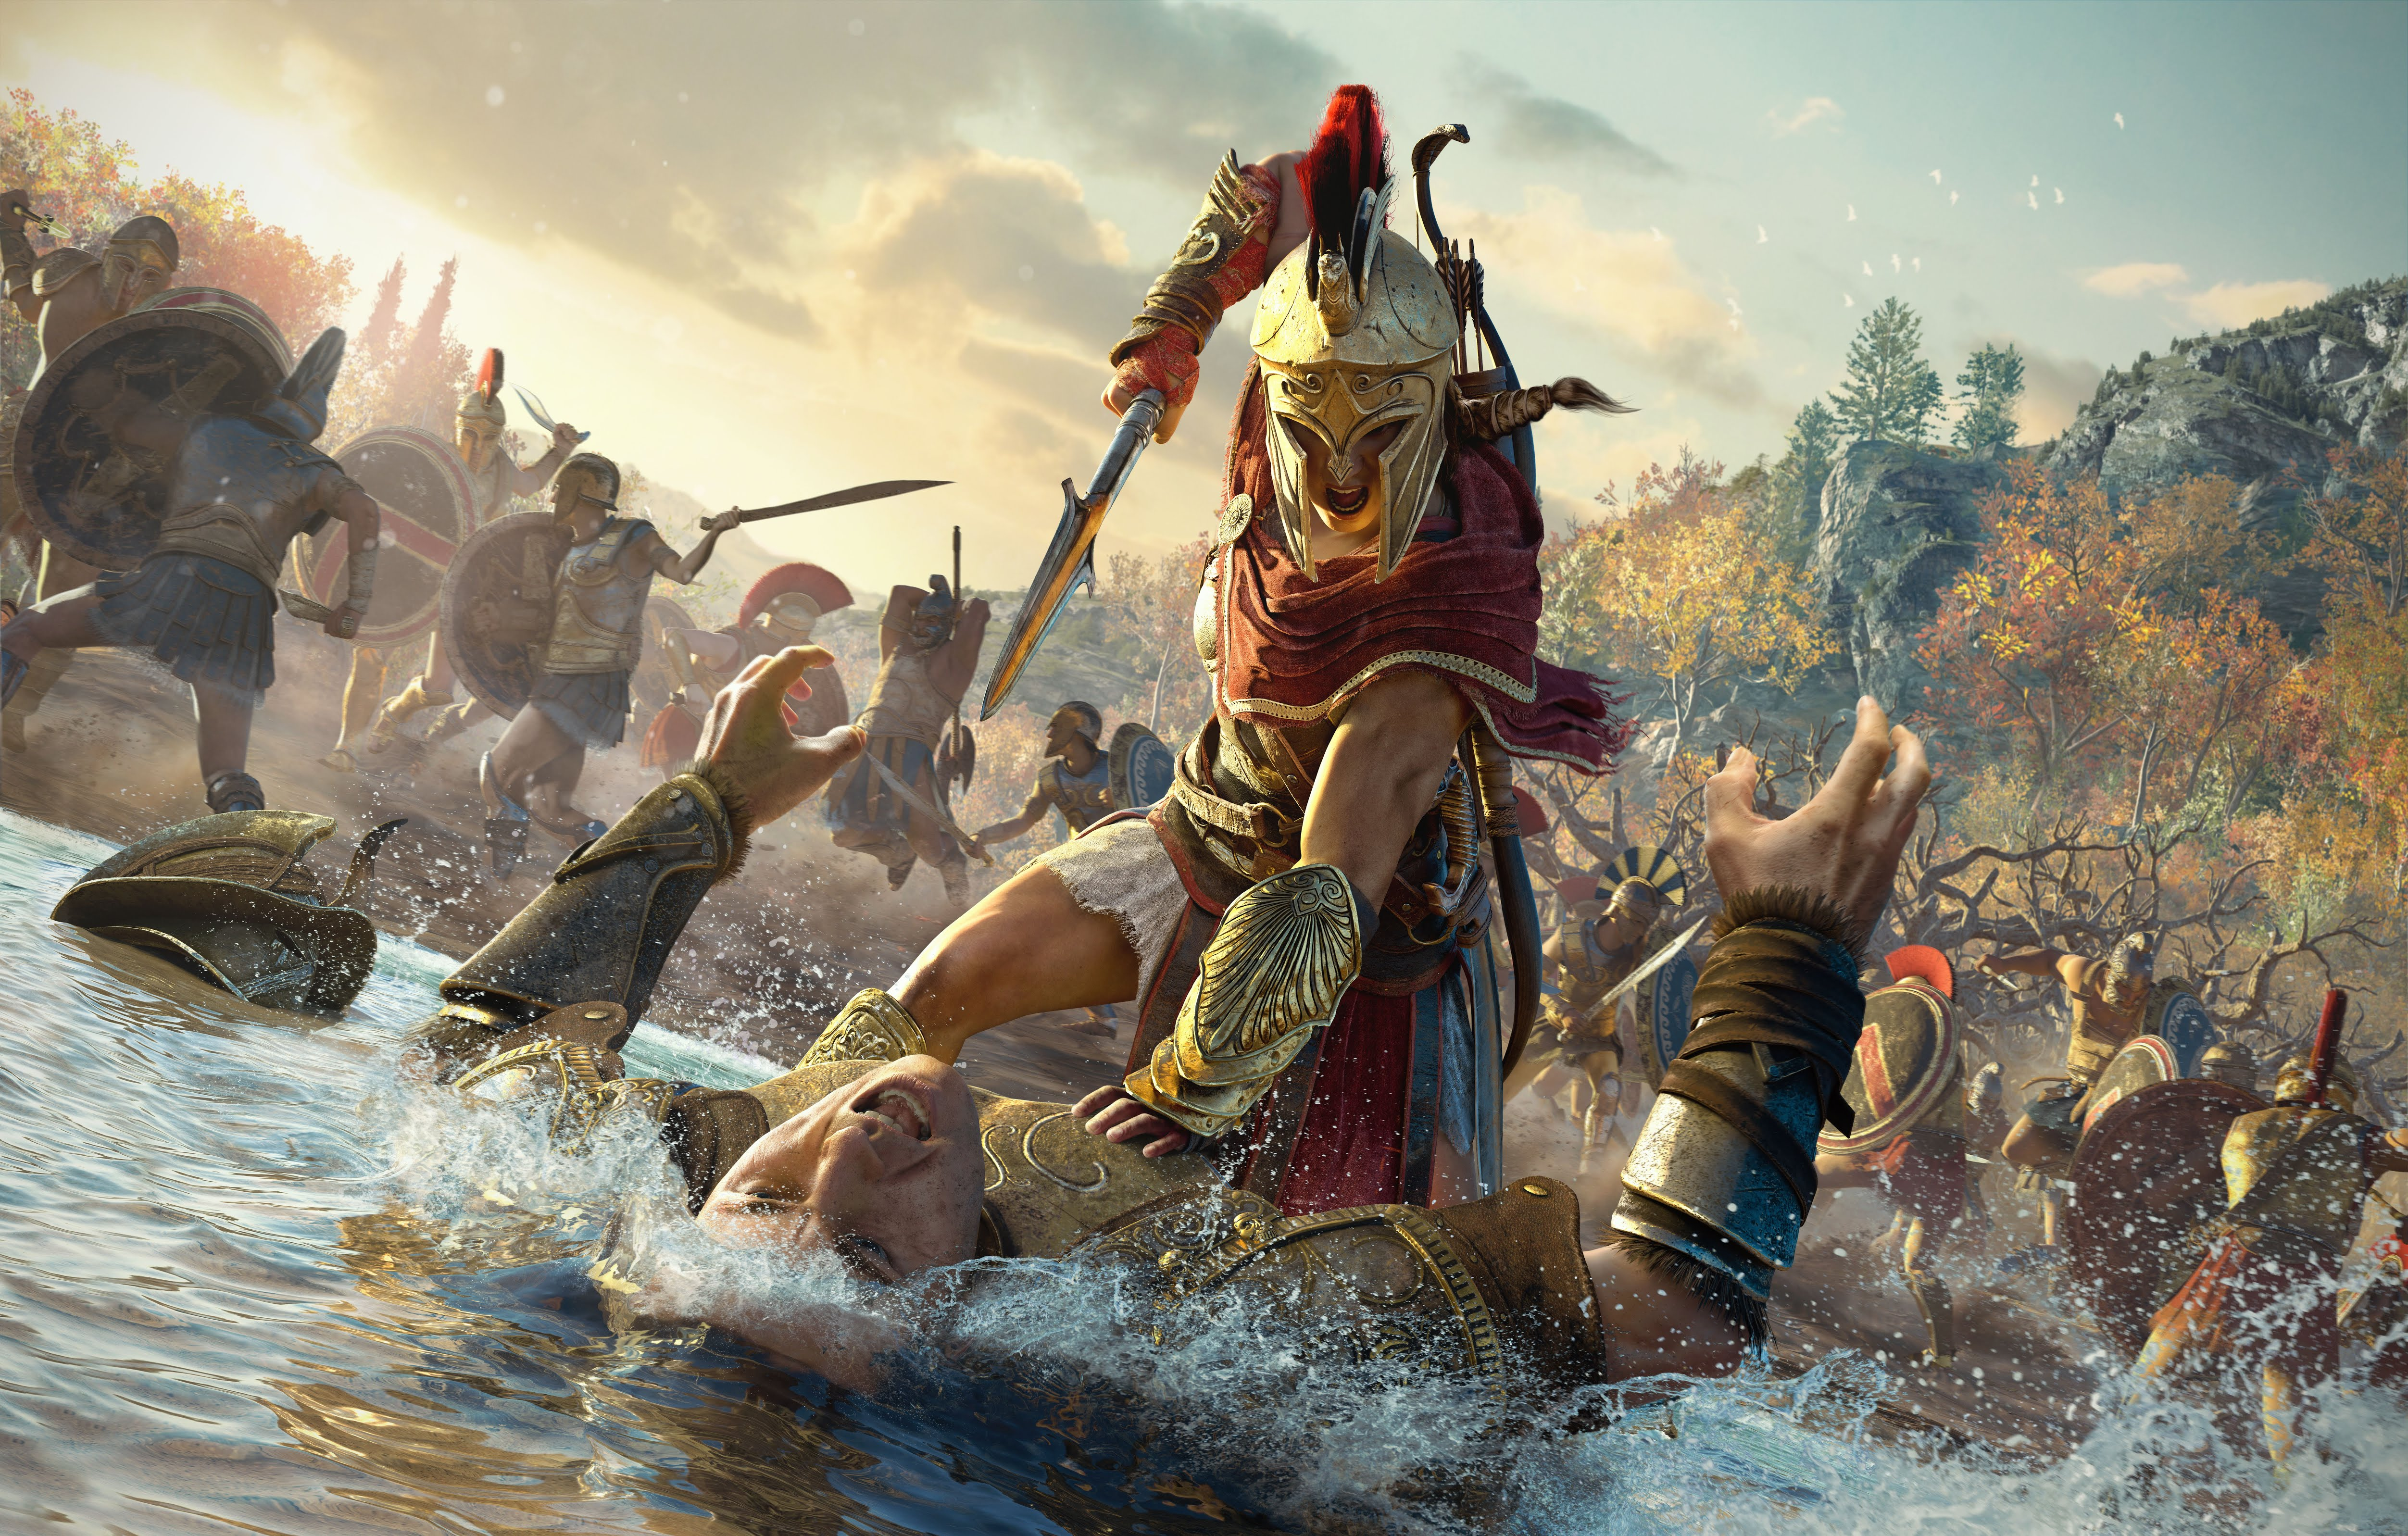 Assassins Creed Odyssey high Res Promo Image